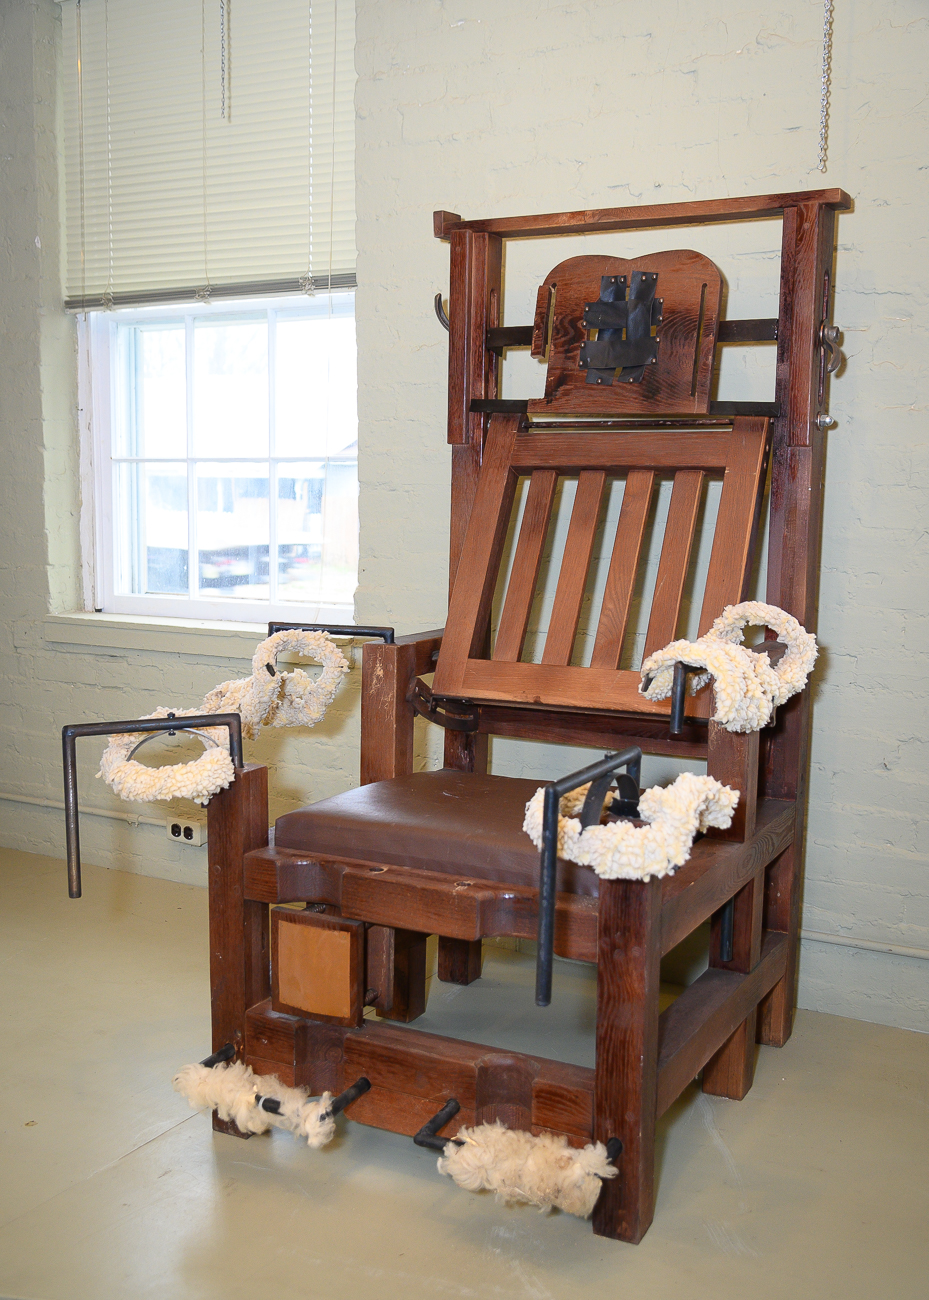 "The museum has two rather unsettling pieces exhibited. The first is a replica of an electric chair that was made in the 1920s. A local blacksmith was commissioned by the government to make a more ""humane"" electric chair for use in executions. The blacksmith, a religious conservative, initially balked at the prospect of making a device to end someone's life, but chose to make the chair in the end if it meant it would provide an easier execution for someone condemned to death. This particular chair is a replica made with the same materials and was never actually used. / Image: Phil Armstrong, Cincinnati Refined // Published: 1.7.20"